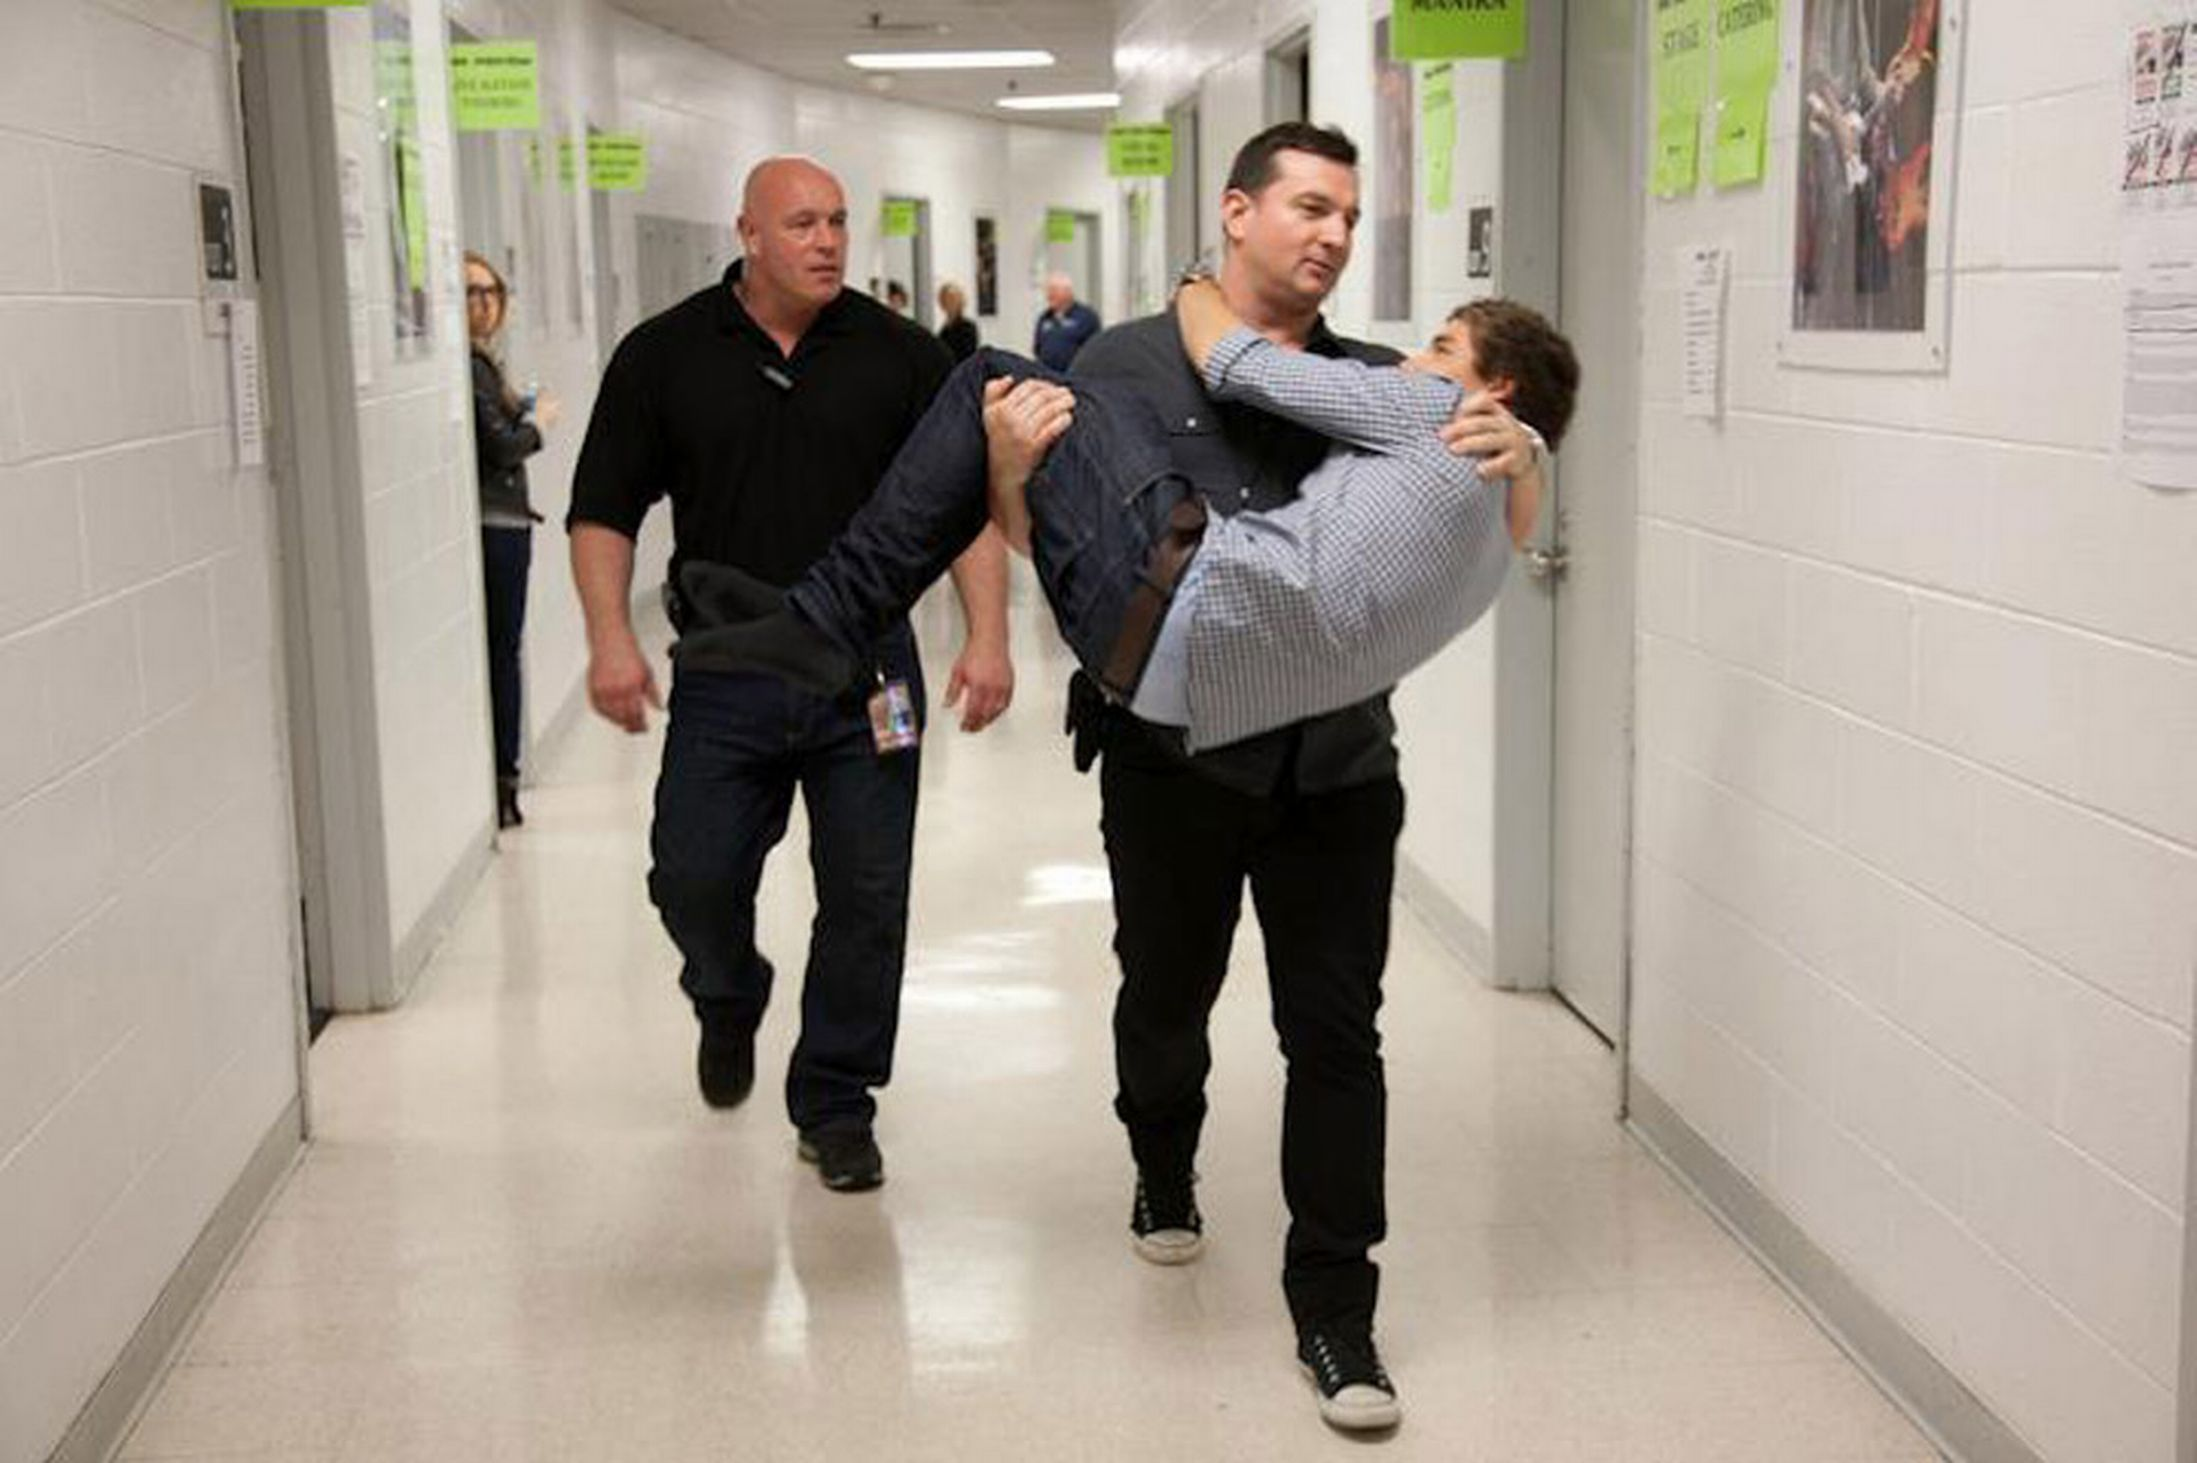 Liam-being-carried-2066406